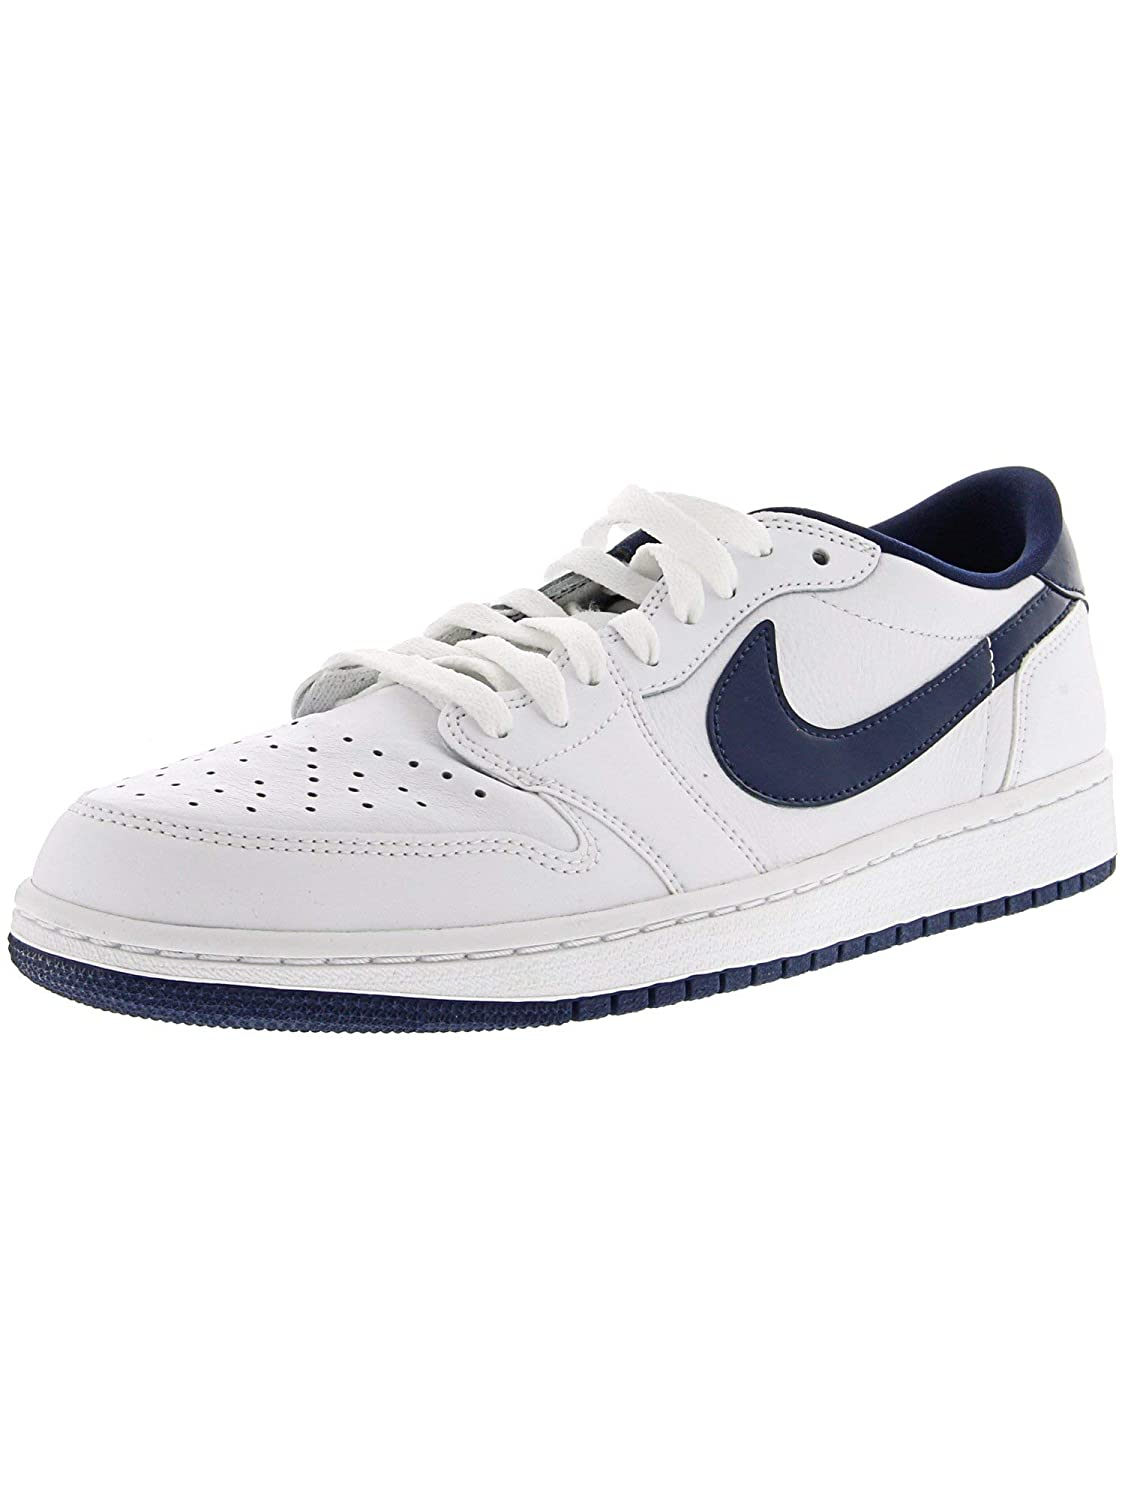 Fashion 1 Navy Nike Og Air 10 Jordan Low Men's 5M Retro Sneaker High Ankle WhiteMidnight lcJT1KF